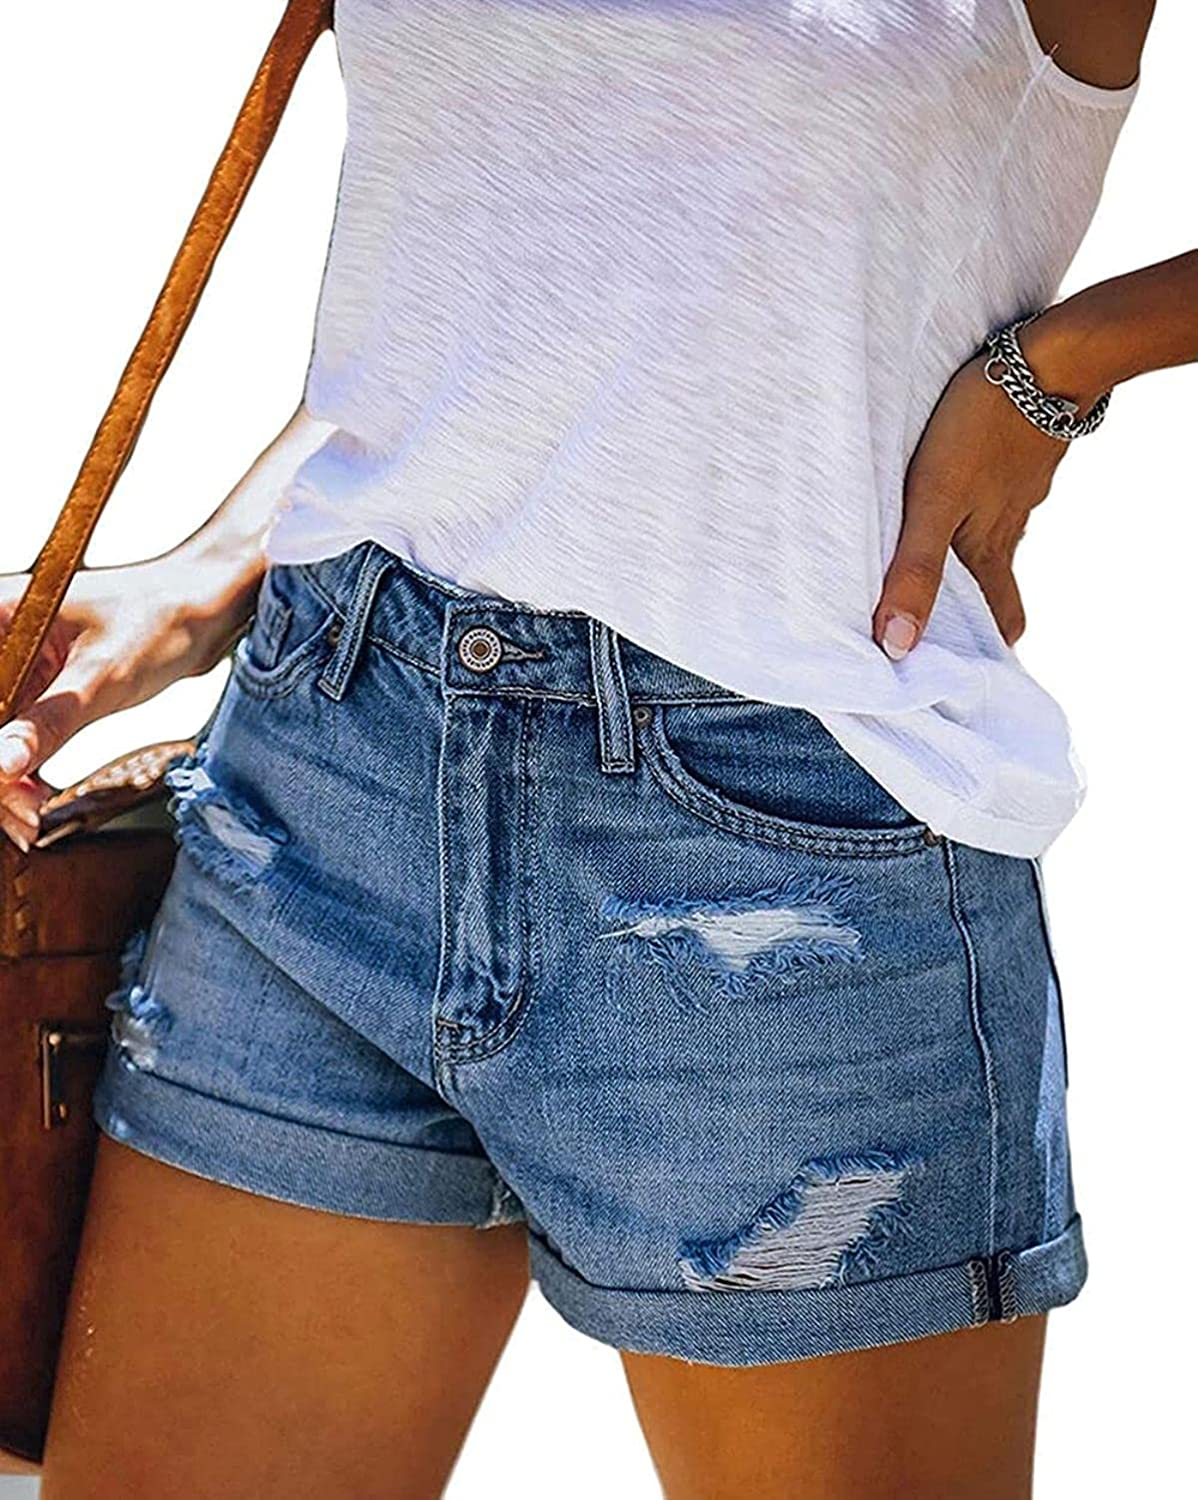 HFStorry Women's Casual Stretch Mid Rise Distressed Ripped Roll Up Denim Jean Shorts with Pockets Light Blue